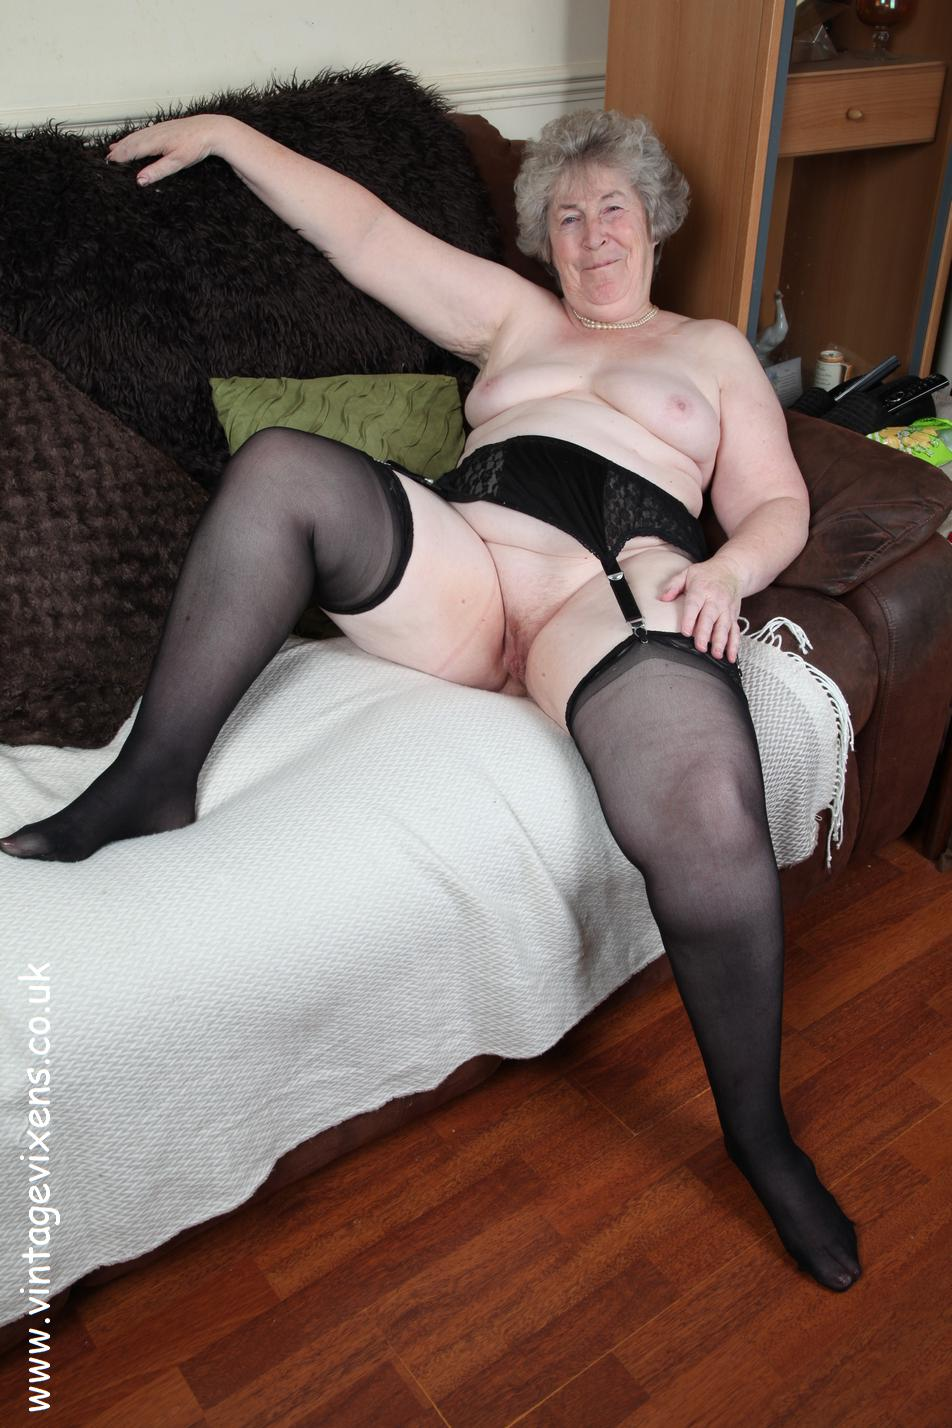 Mom skinny mature woman fucks her married lover 1